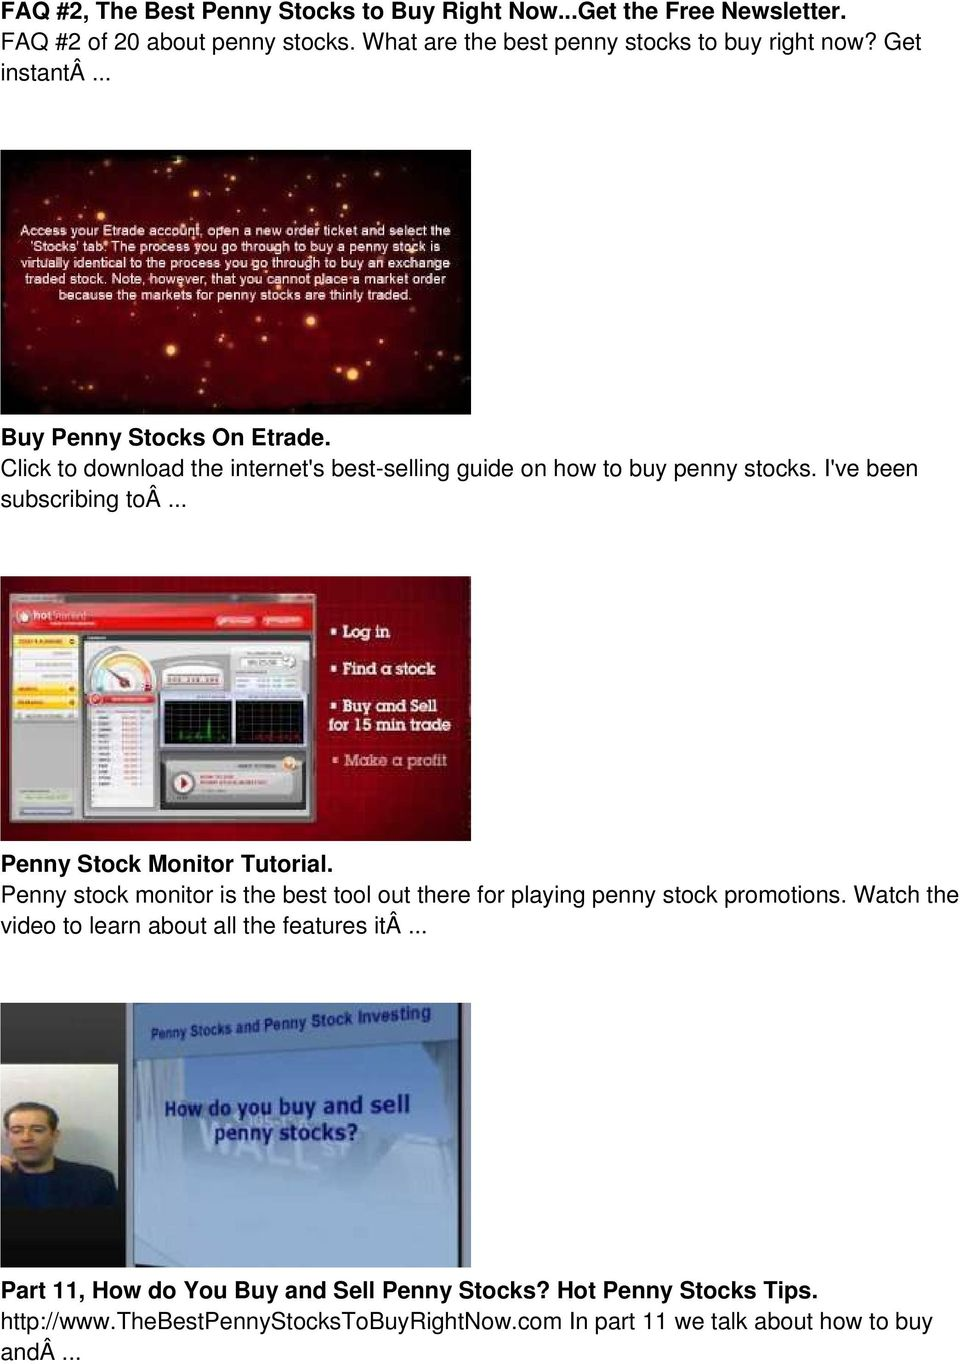 Ander Page Videos full version is >>> here <<< - pdf free download